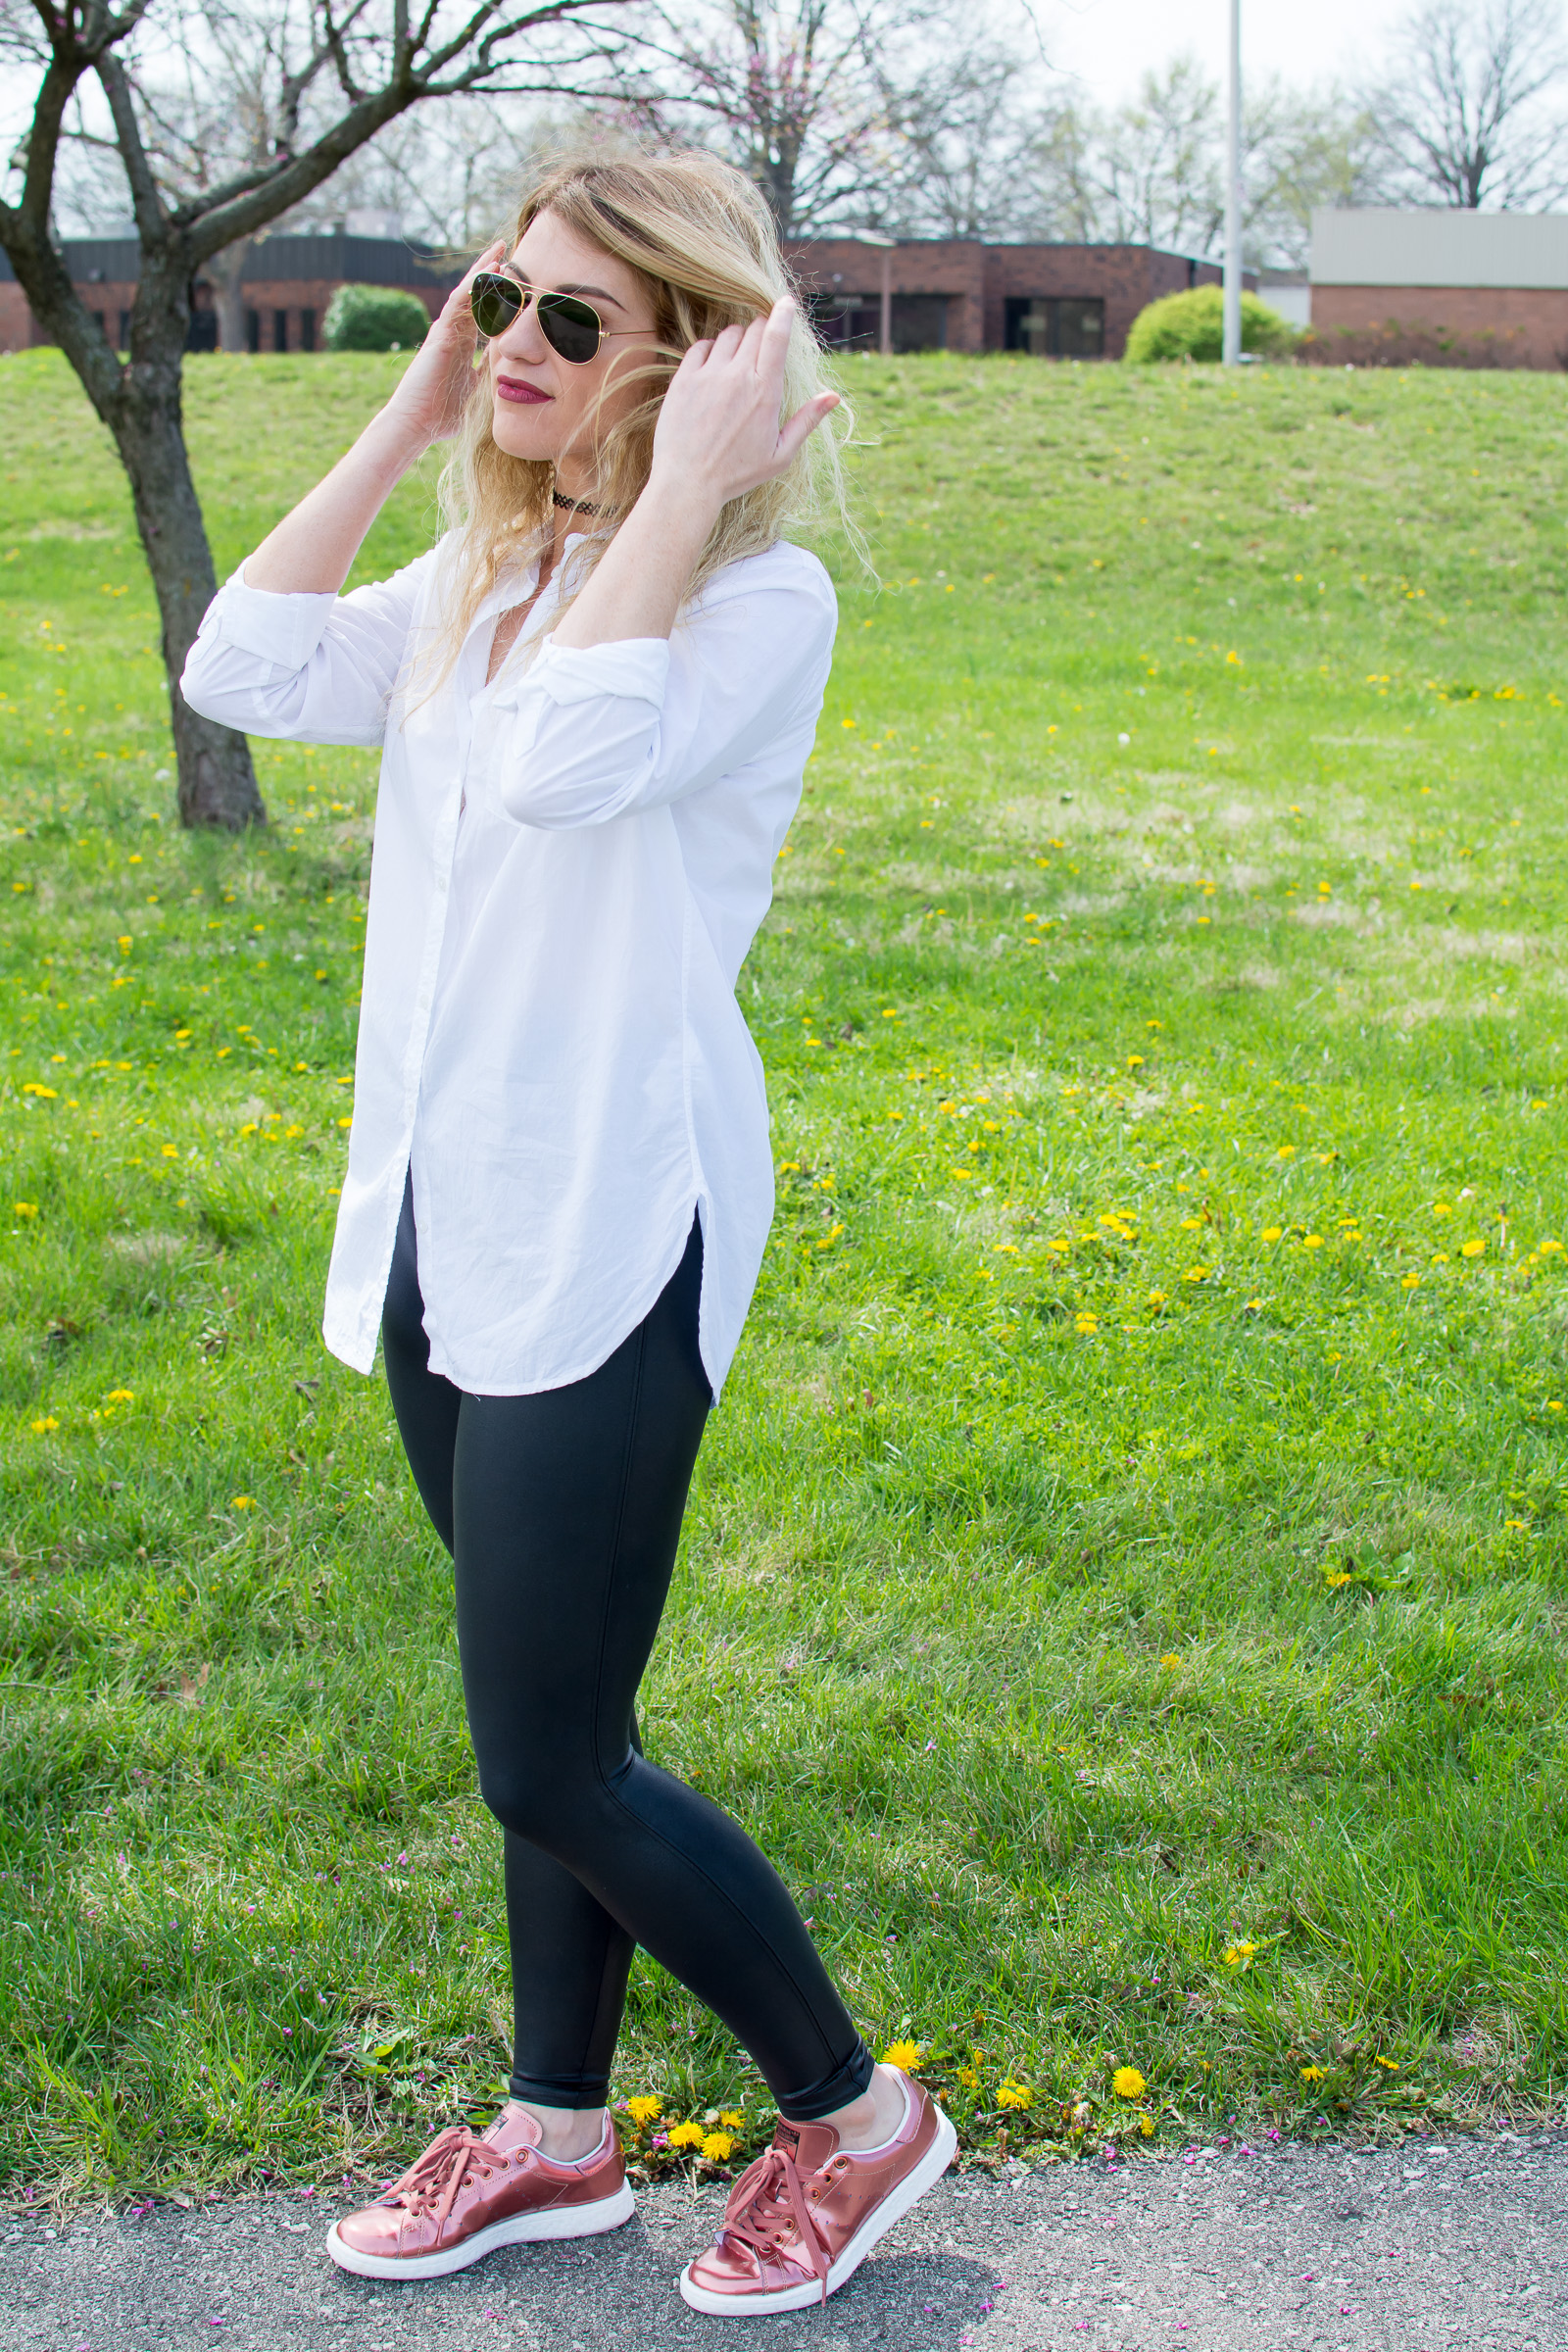 Athleisure How-to: White Button-up and Sneakers. | Ashley from Le Stylo Rouge